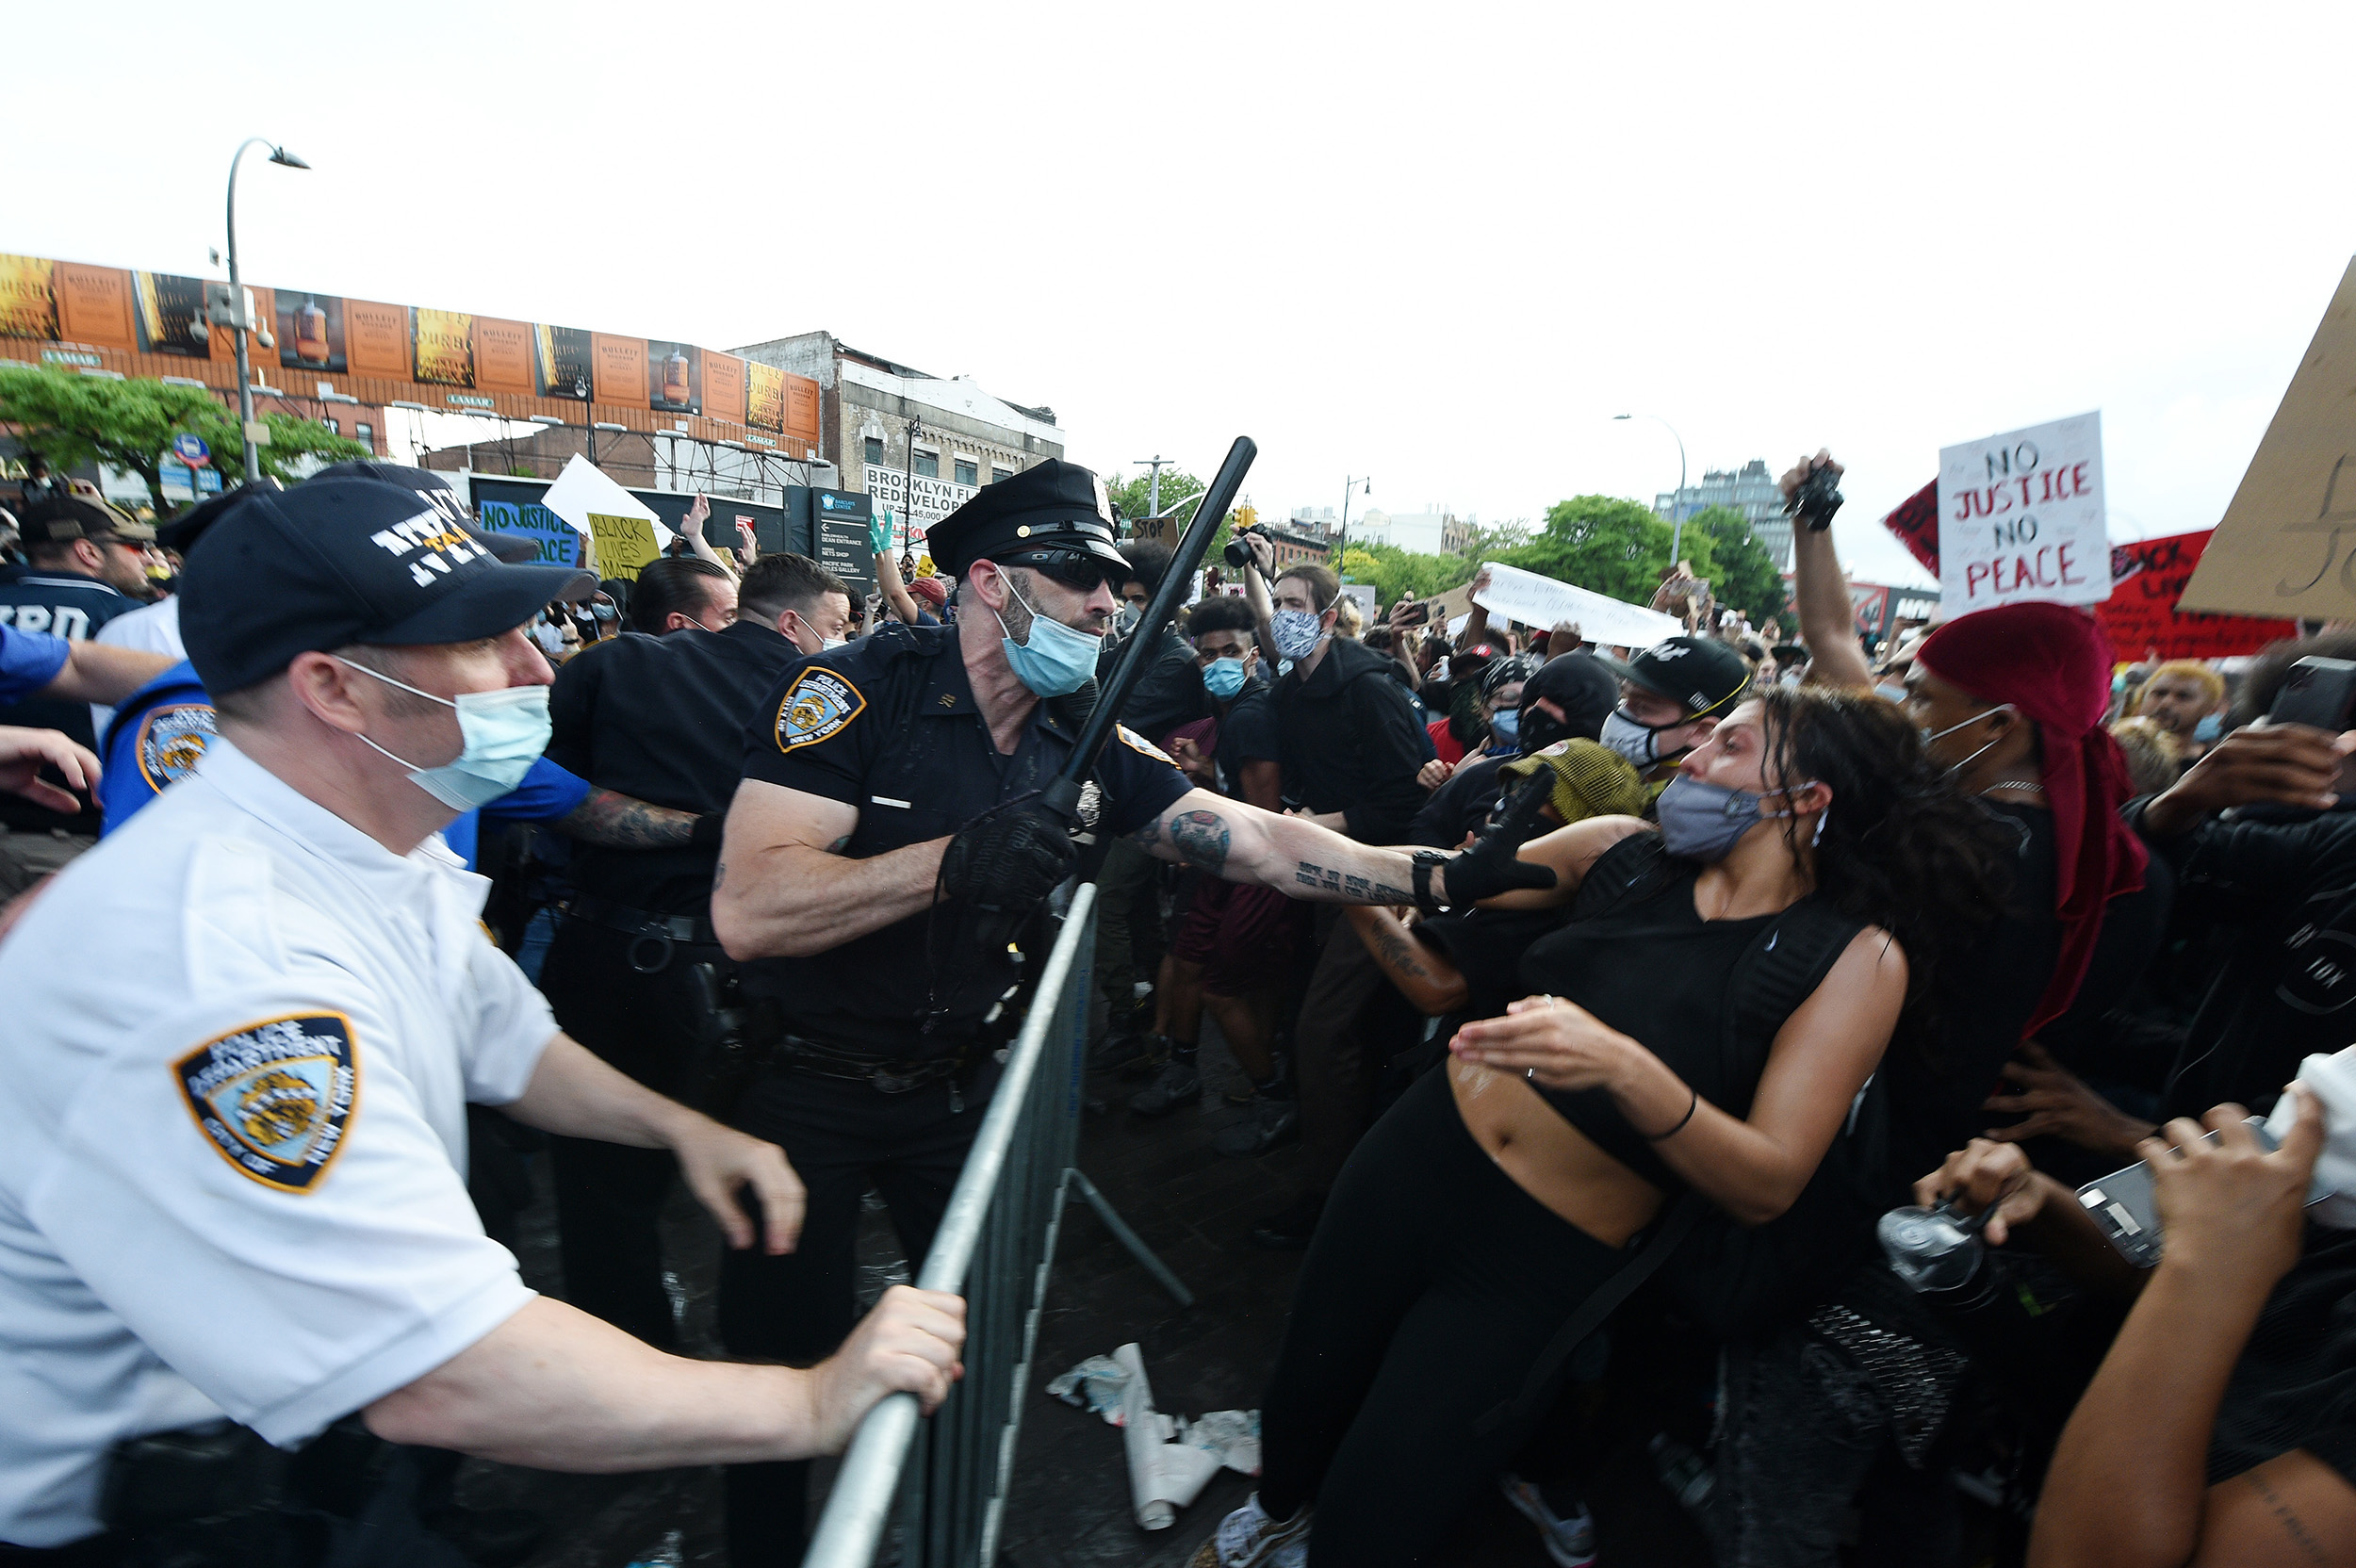 Protesters and police clash outside Barclays Center in Brooklyn